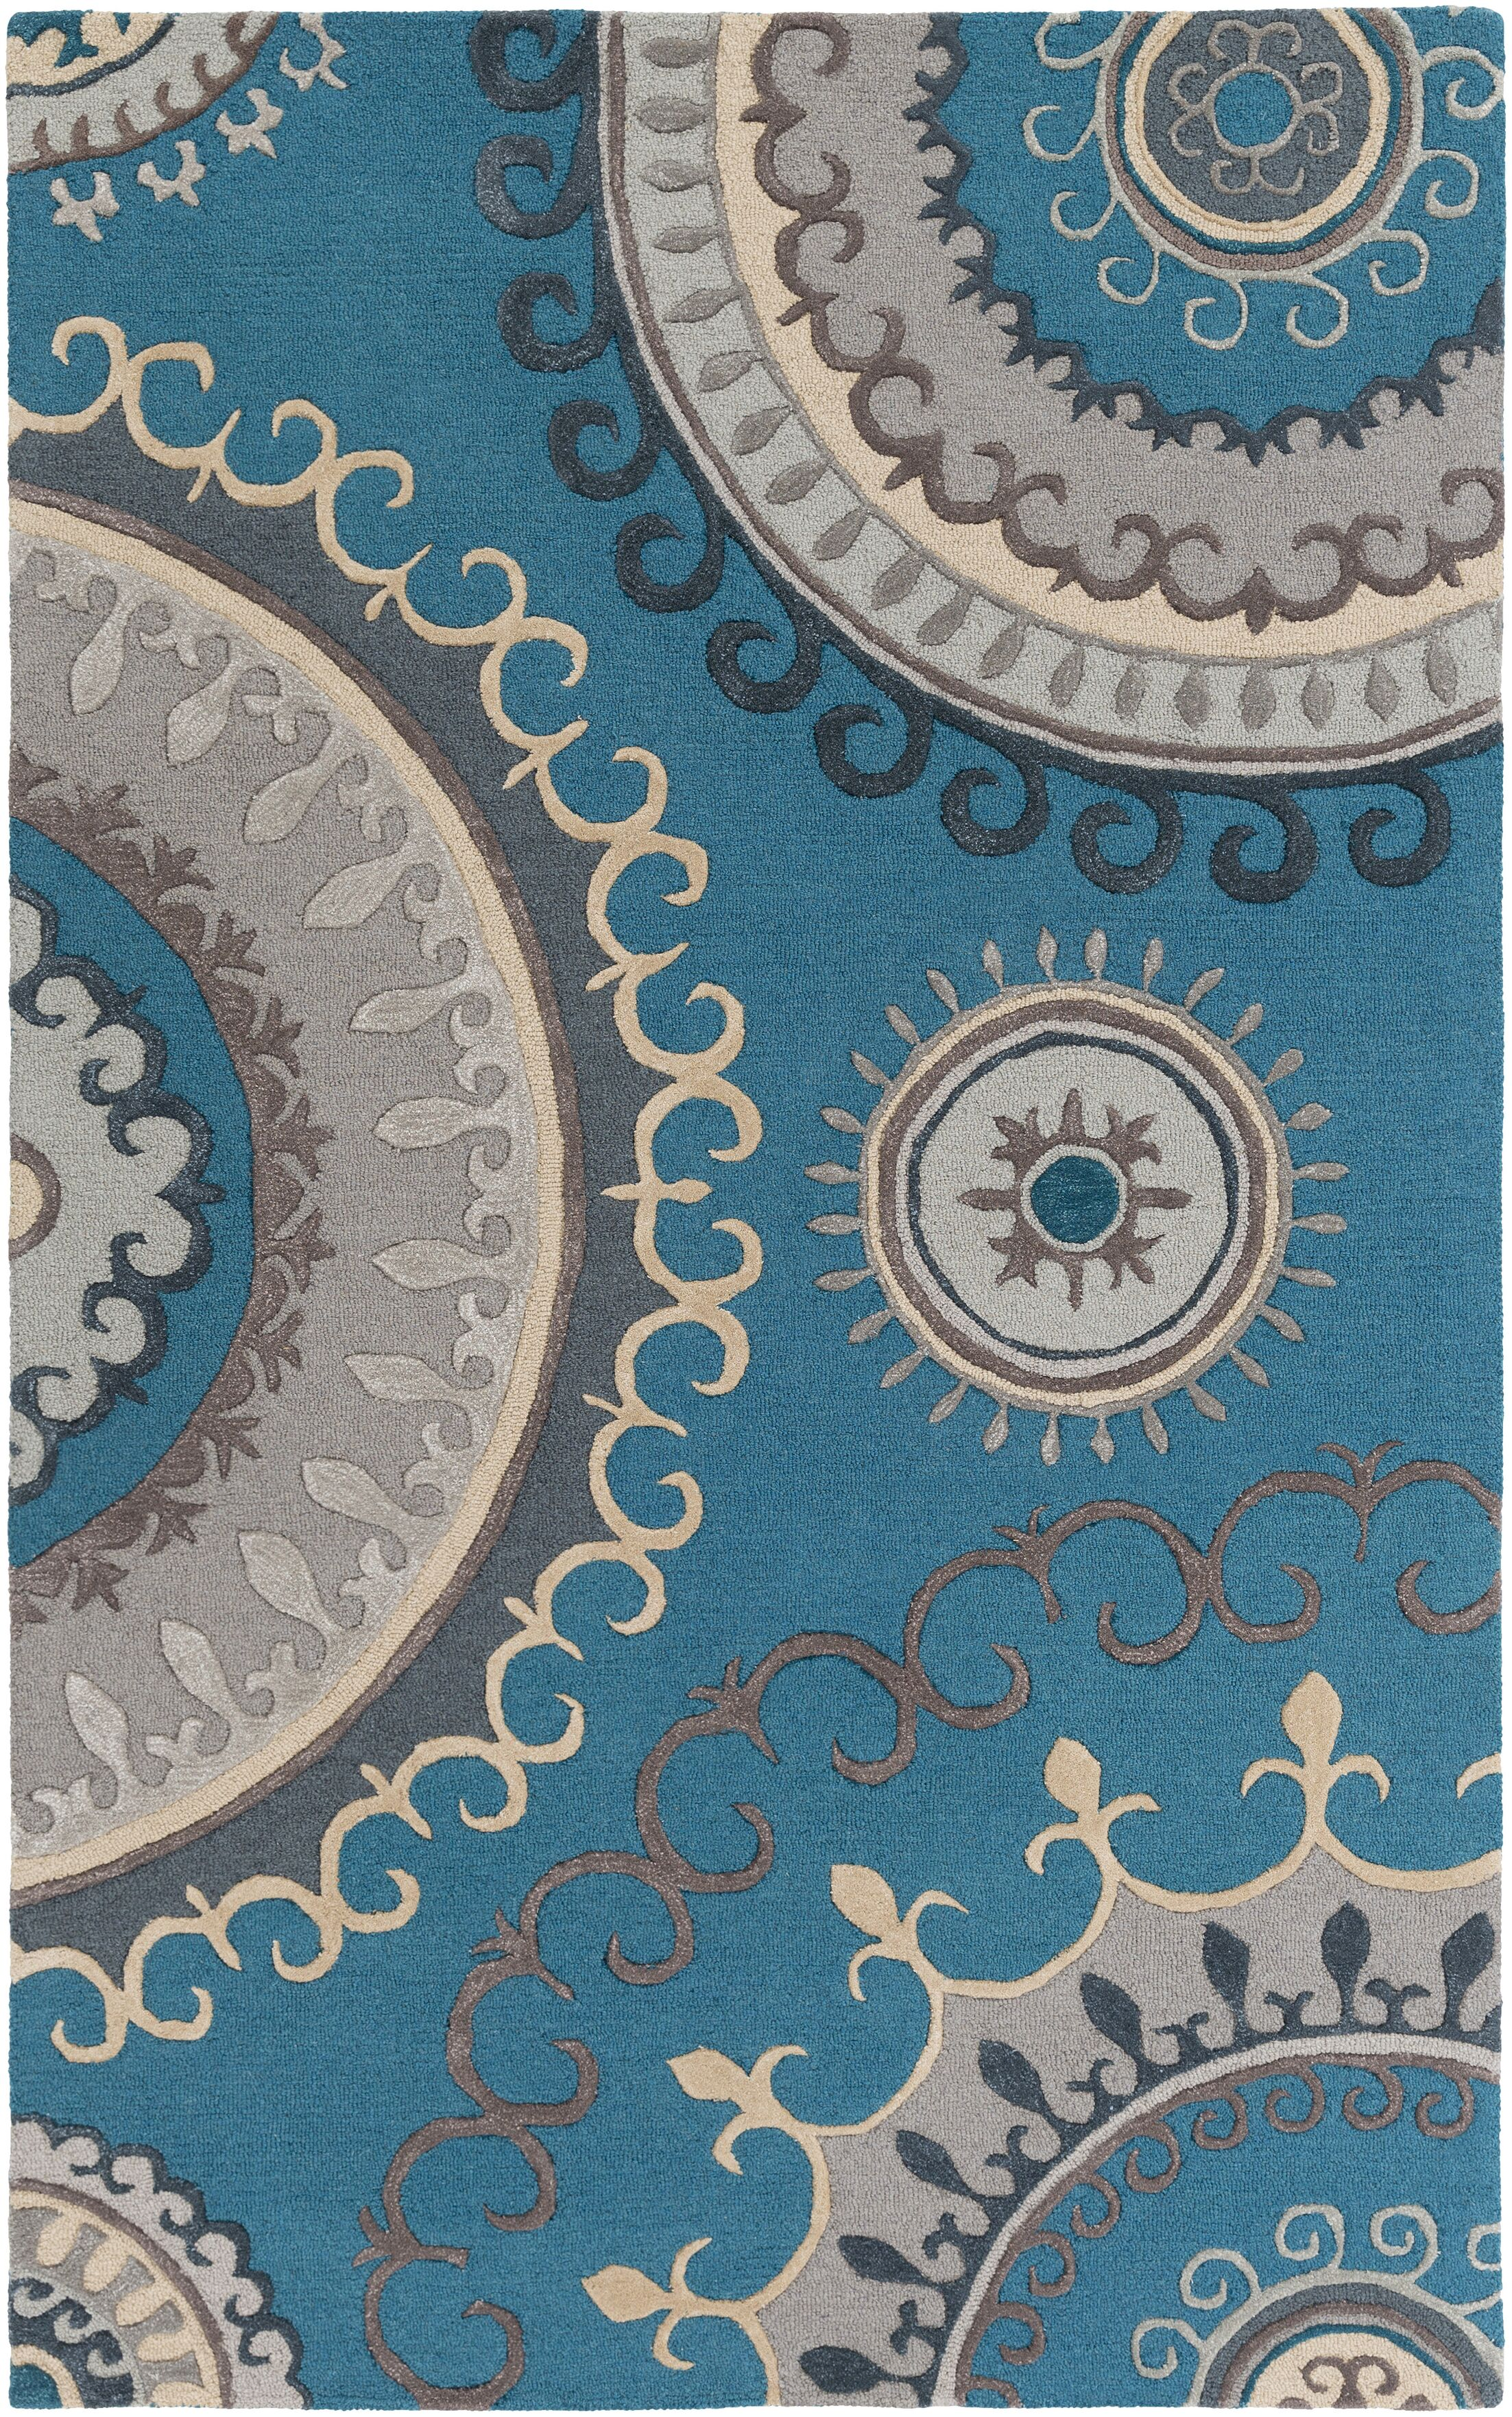 Costanzo Hand-Tufted Teal/Gray Area Rug Rug Size: Rectangle 5' x 8'